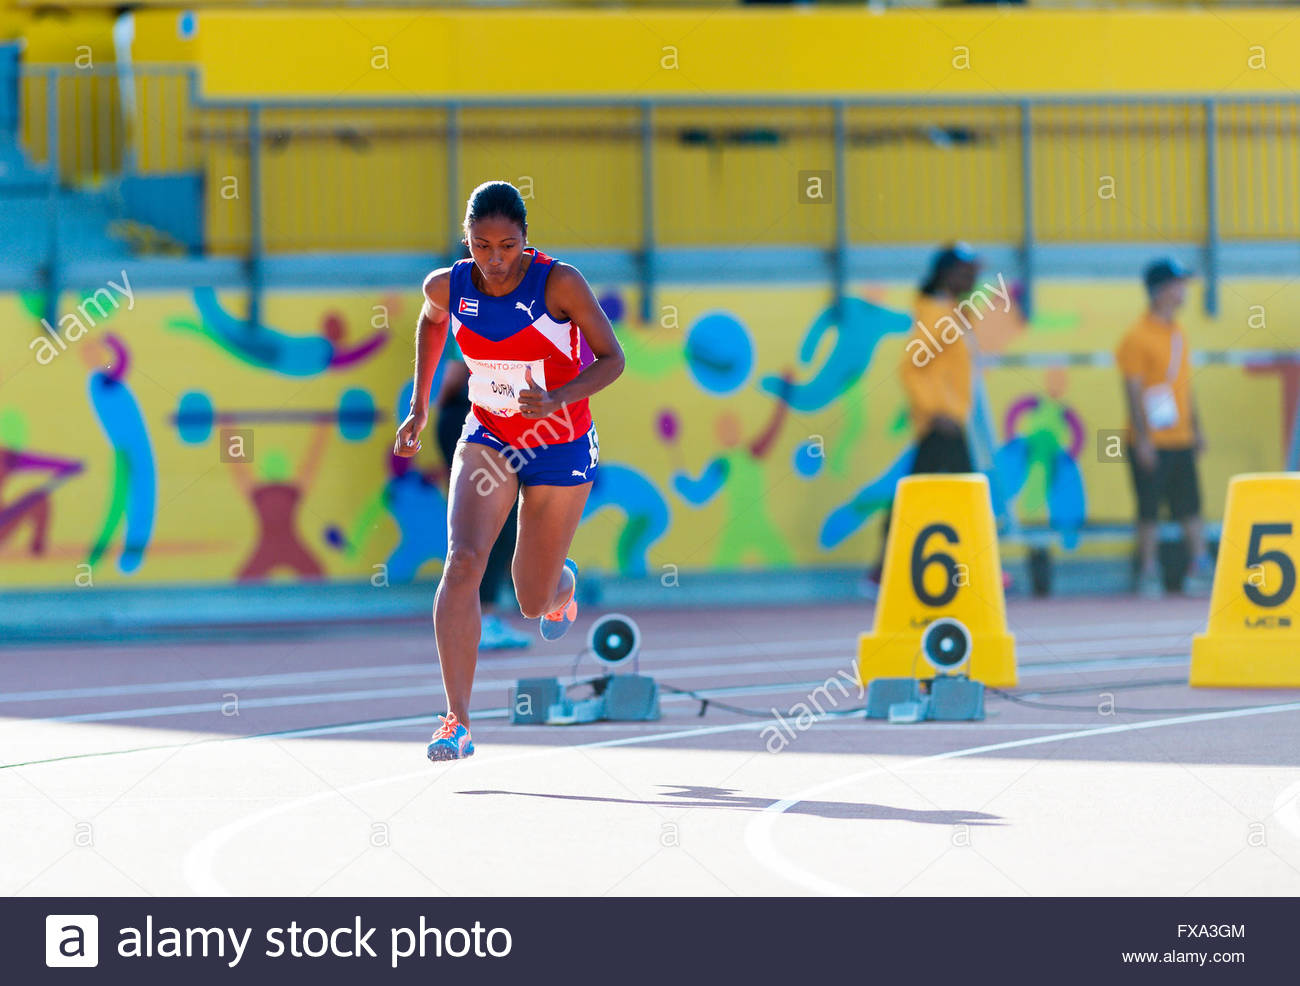 Ormara Durand starting technique. She is a Cuban paralympic athlete.Athletics competition and medals ceremonies - Stock Image